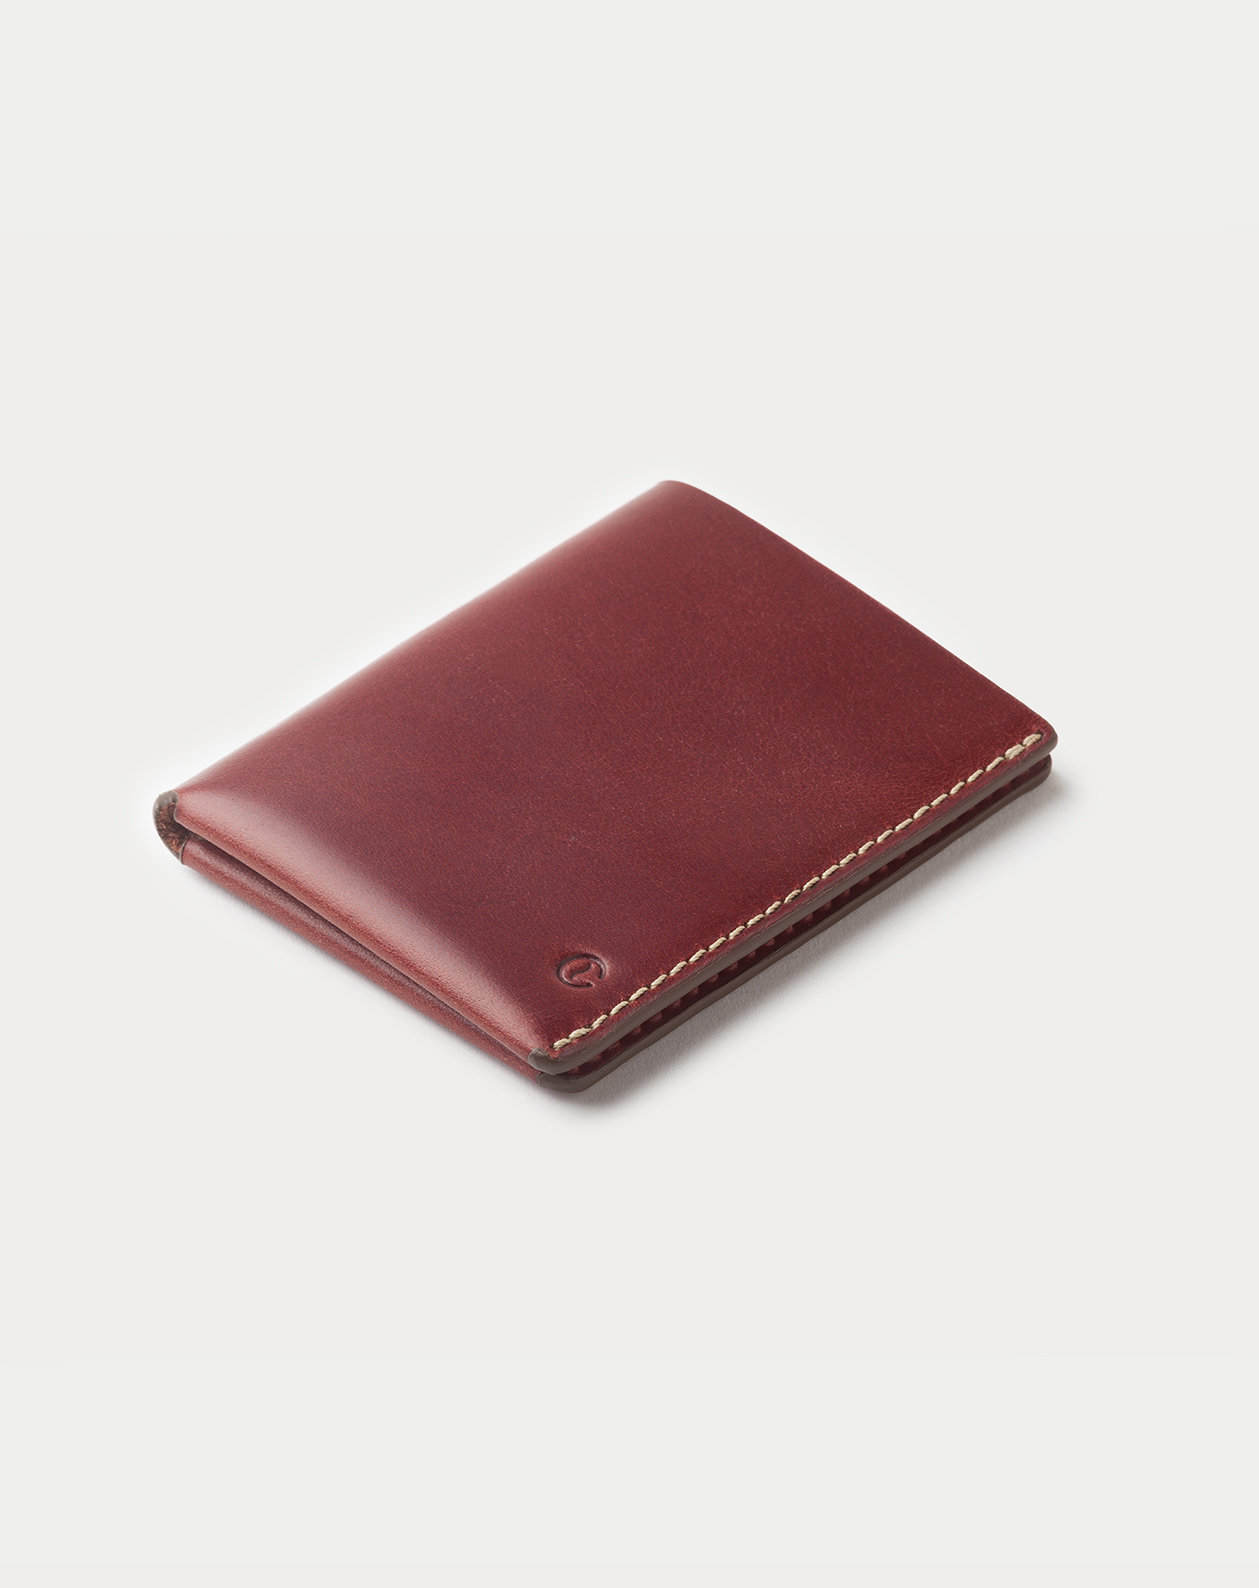 Ultra Slim Leather Wallet Jamaica Berry 3